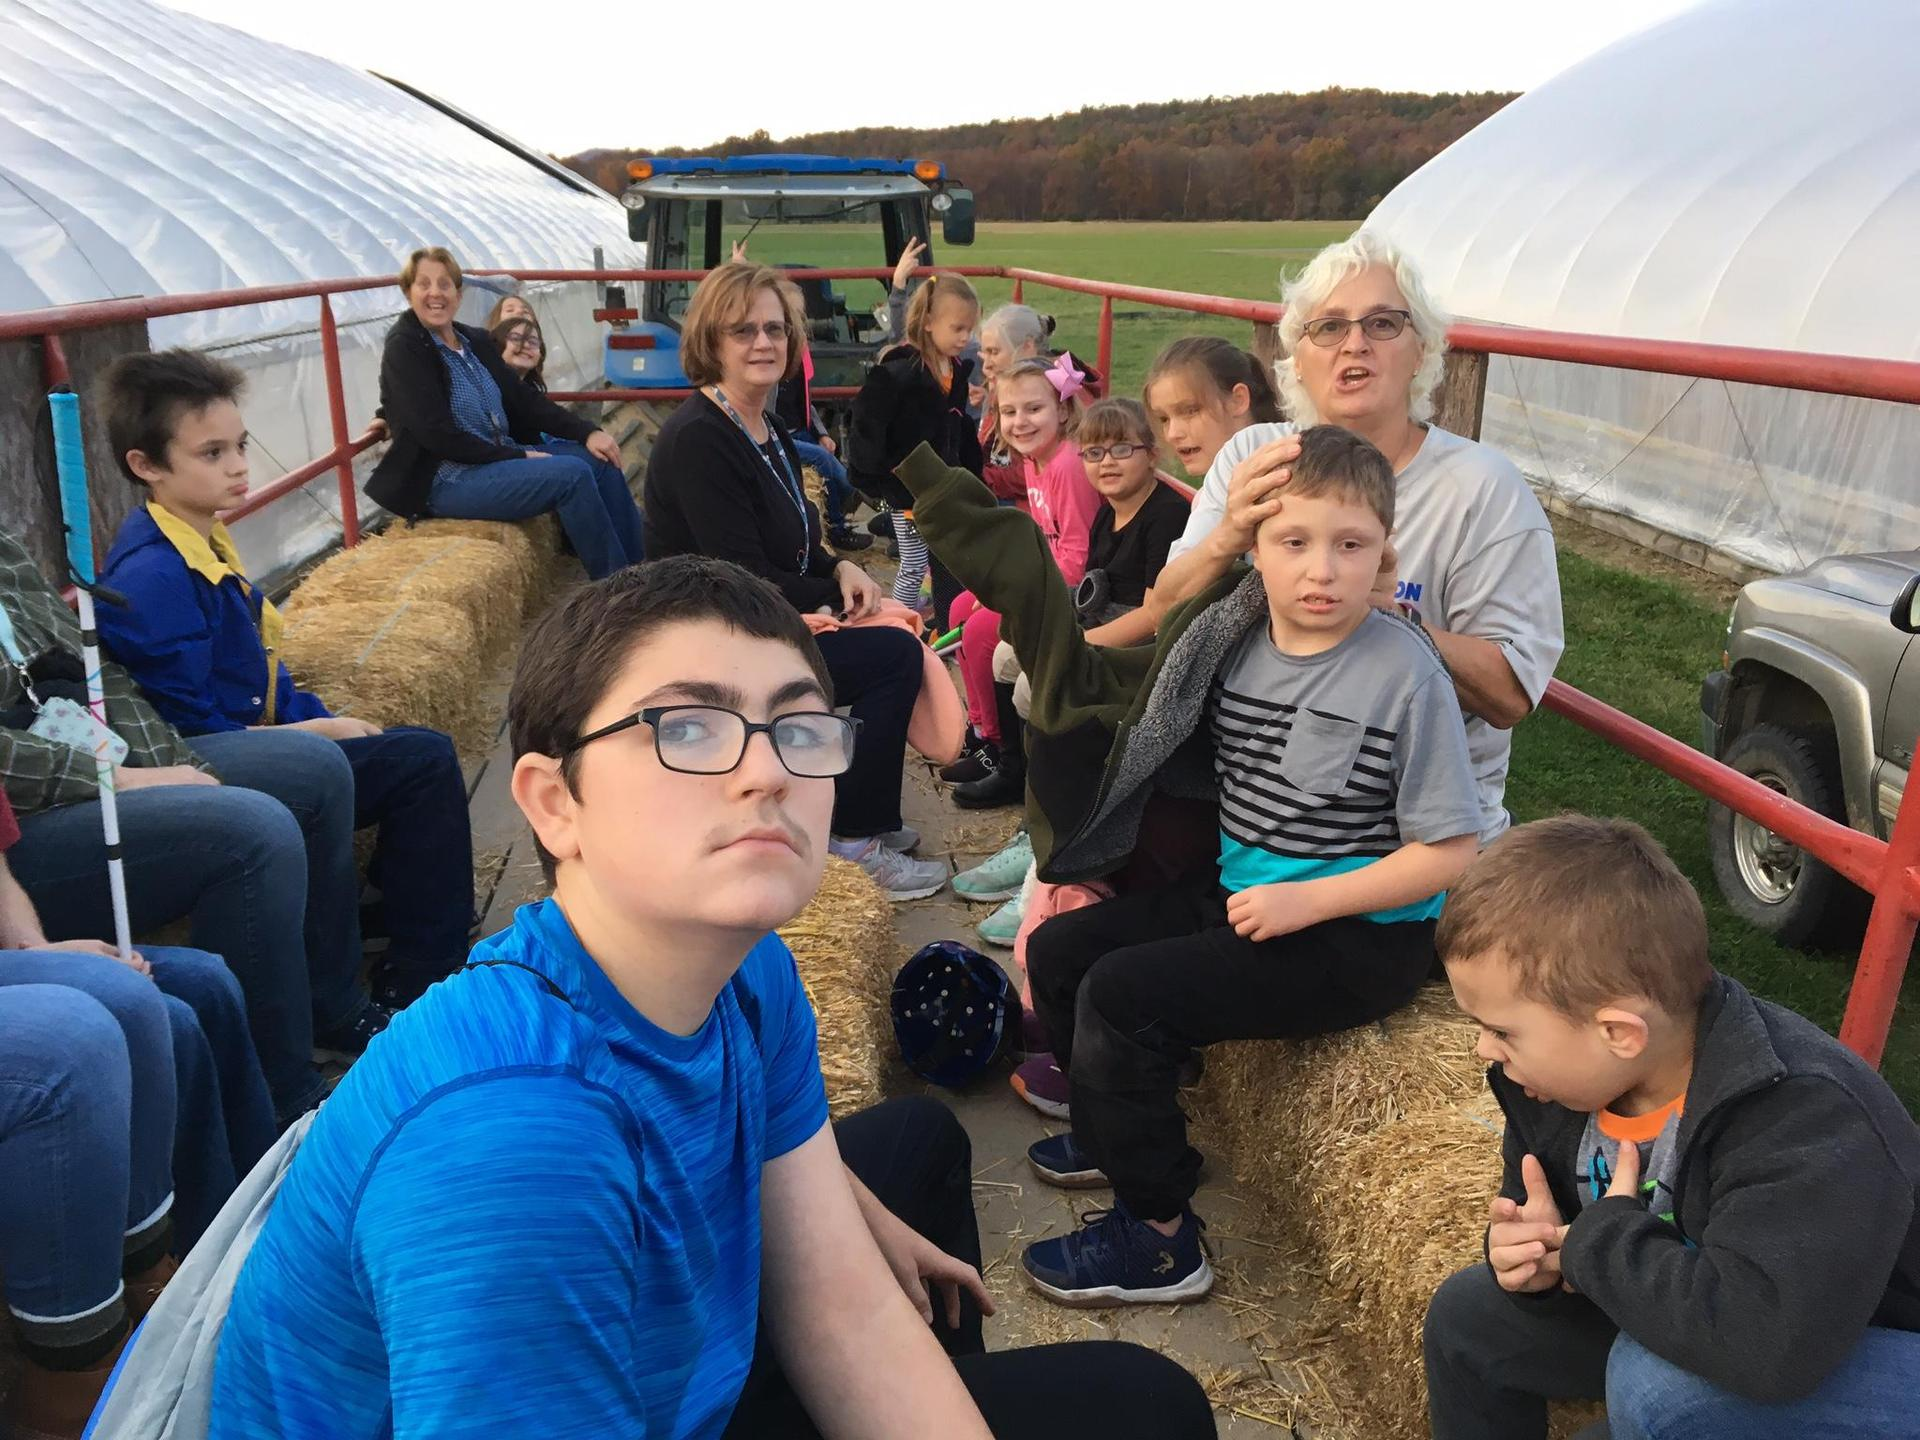 Dorm students facing the camera for a picture on the hayride